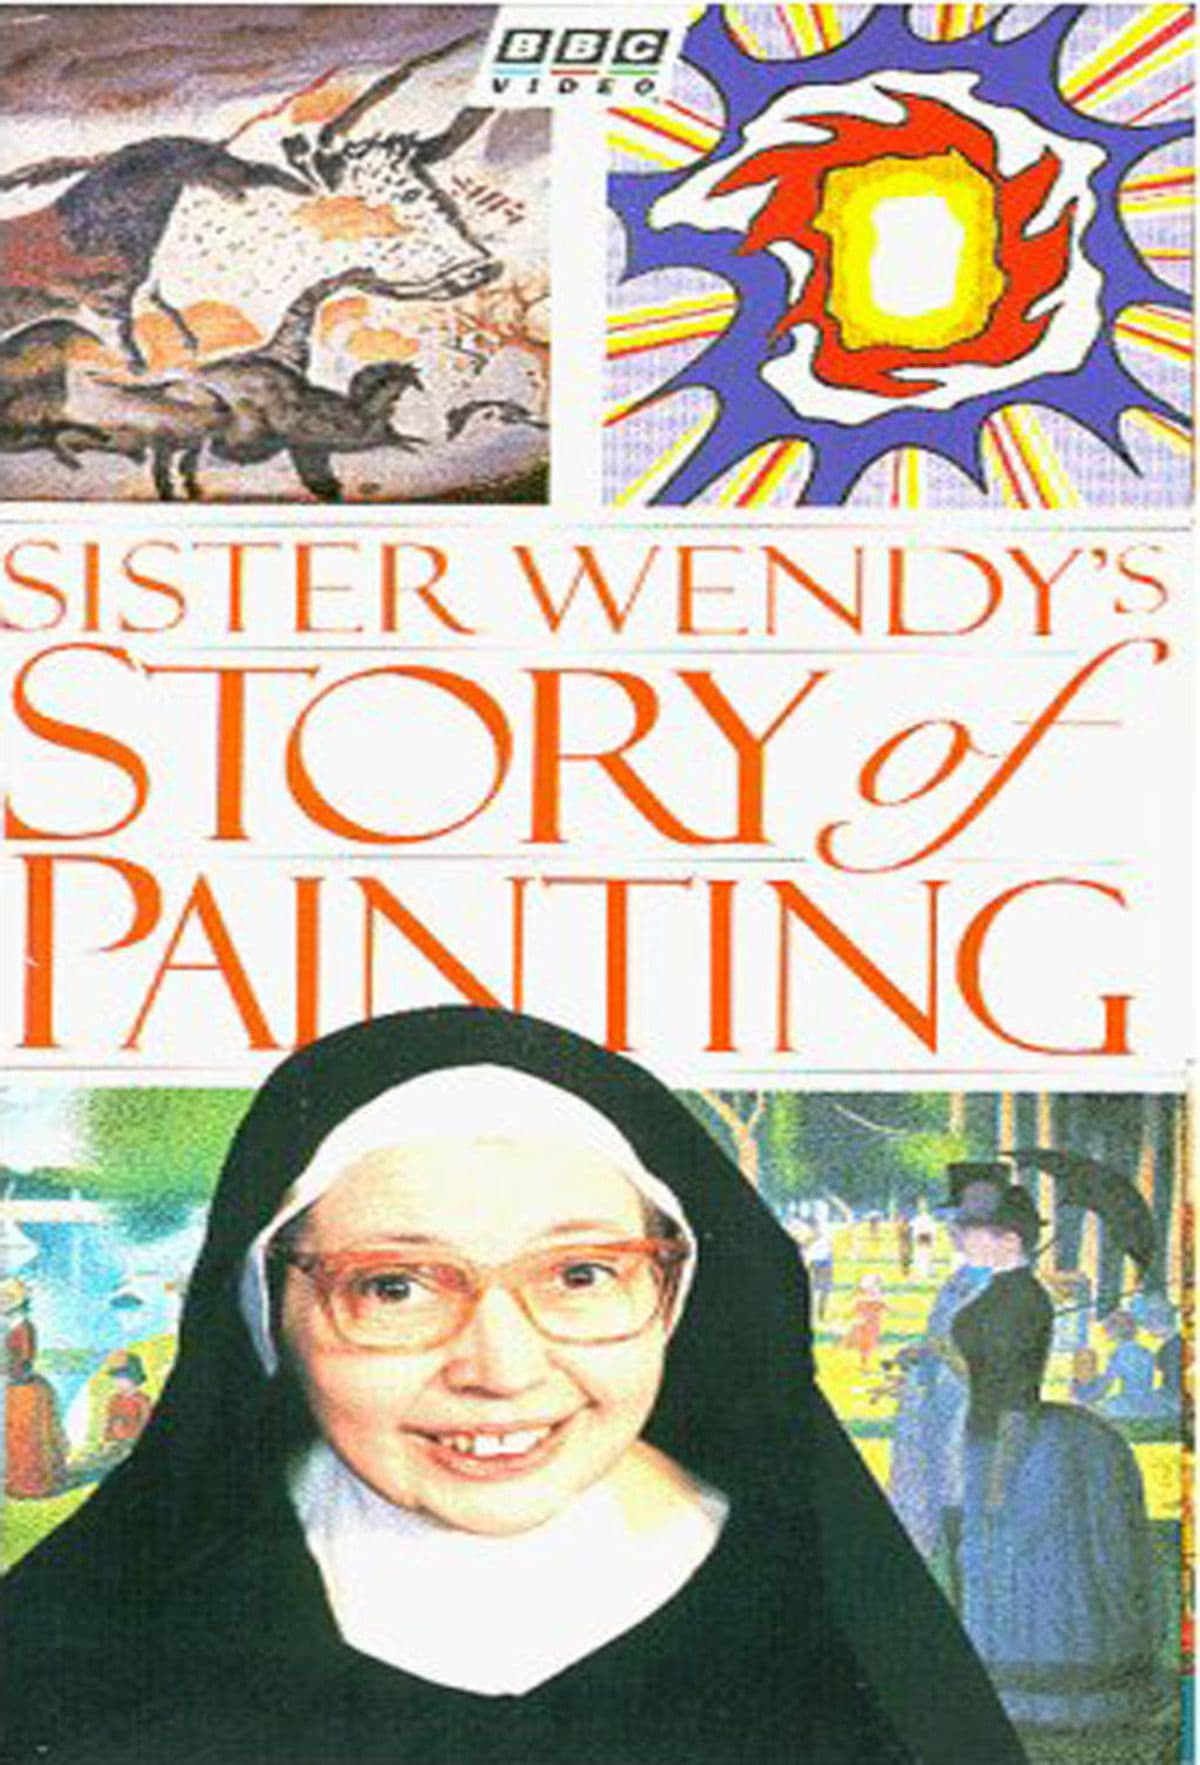 Sister Wendy's Story of Painting TV Shows About Nun